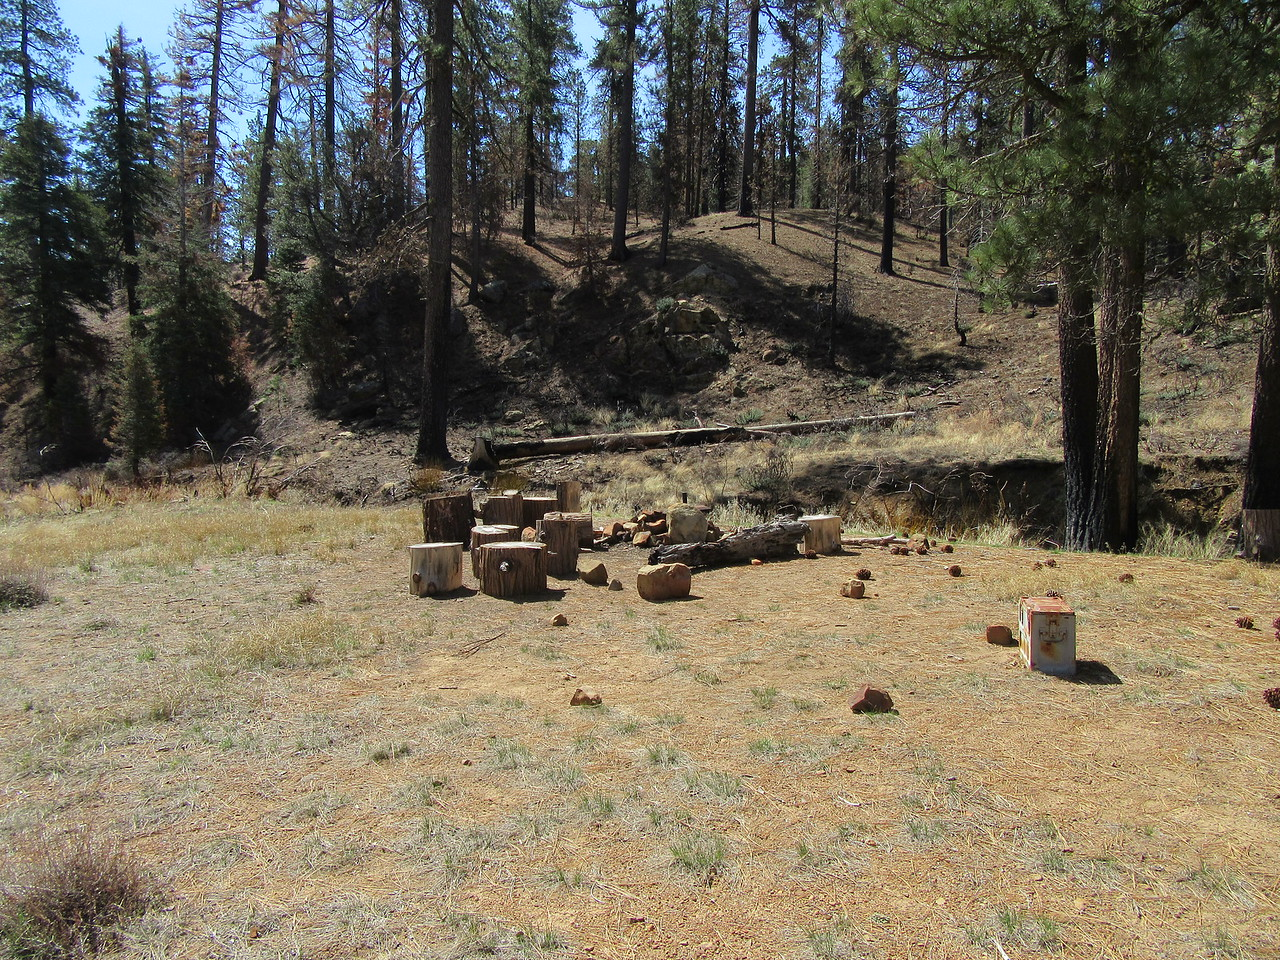 ... Haddock Camp (6120') where some sawyers have cut down hazard trees and made some nice wilderness chairs for campers.  After a break ...